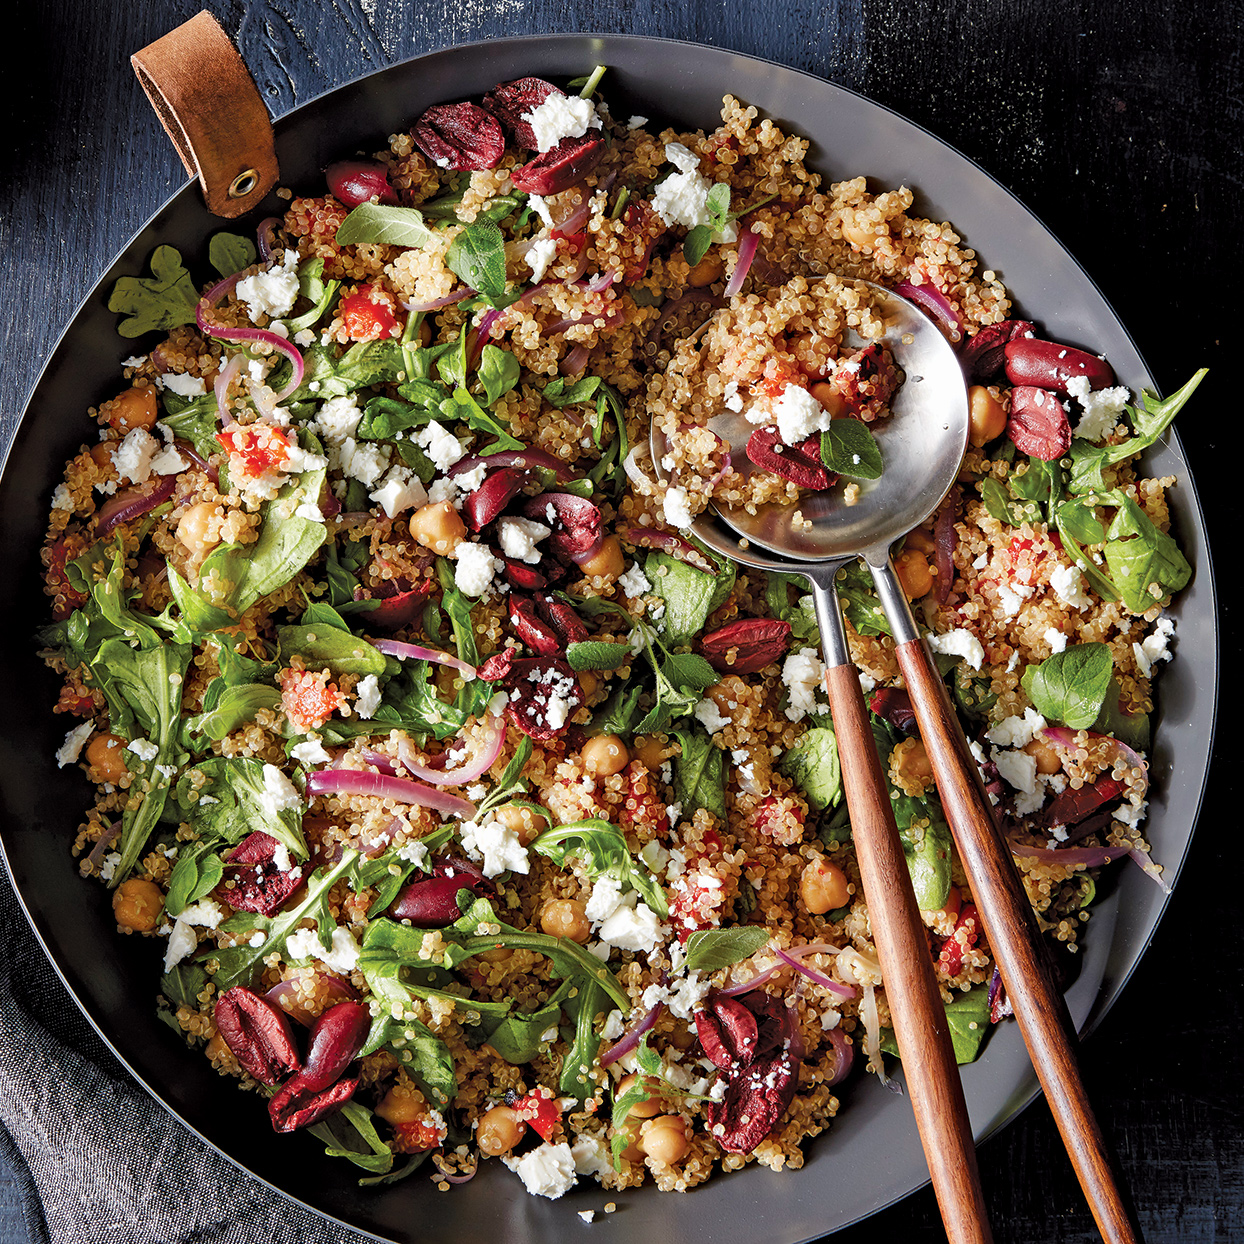 Chock-full of quinoa, chickpeas and vegetables, this salad is a meal in itself. The roasted red peppers, lemon, olives and feta add familiar Mediterranean flavor. If you want to provide a meat option, serve with grilled chicken. Source: Everyday Slow Cooker